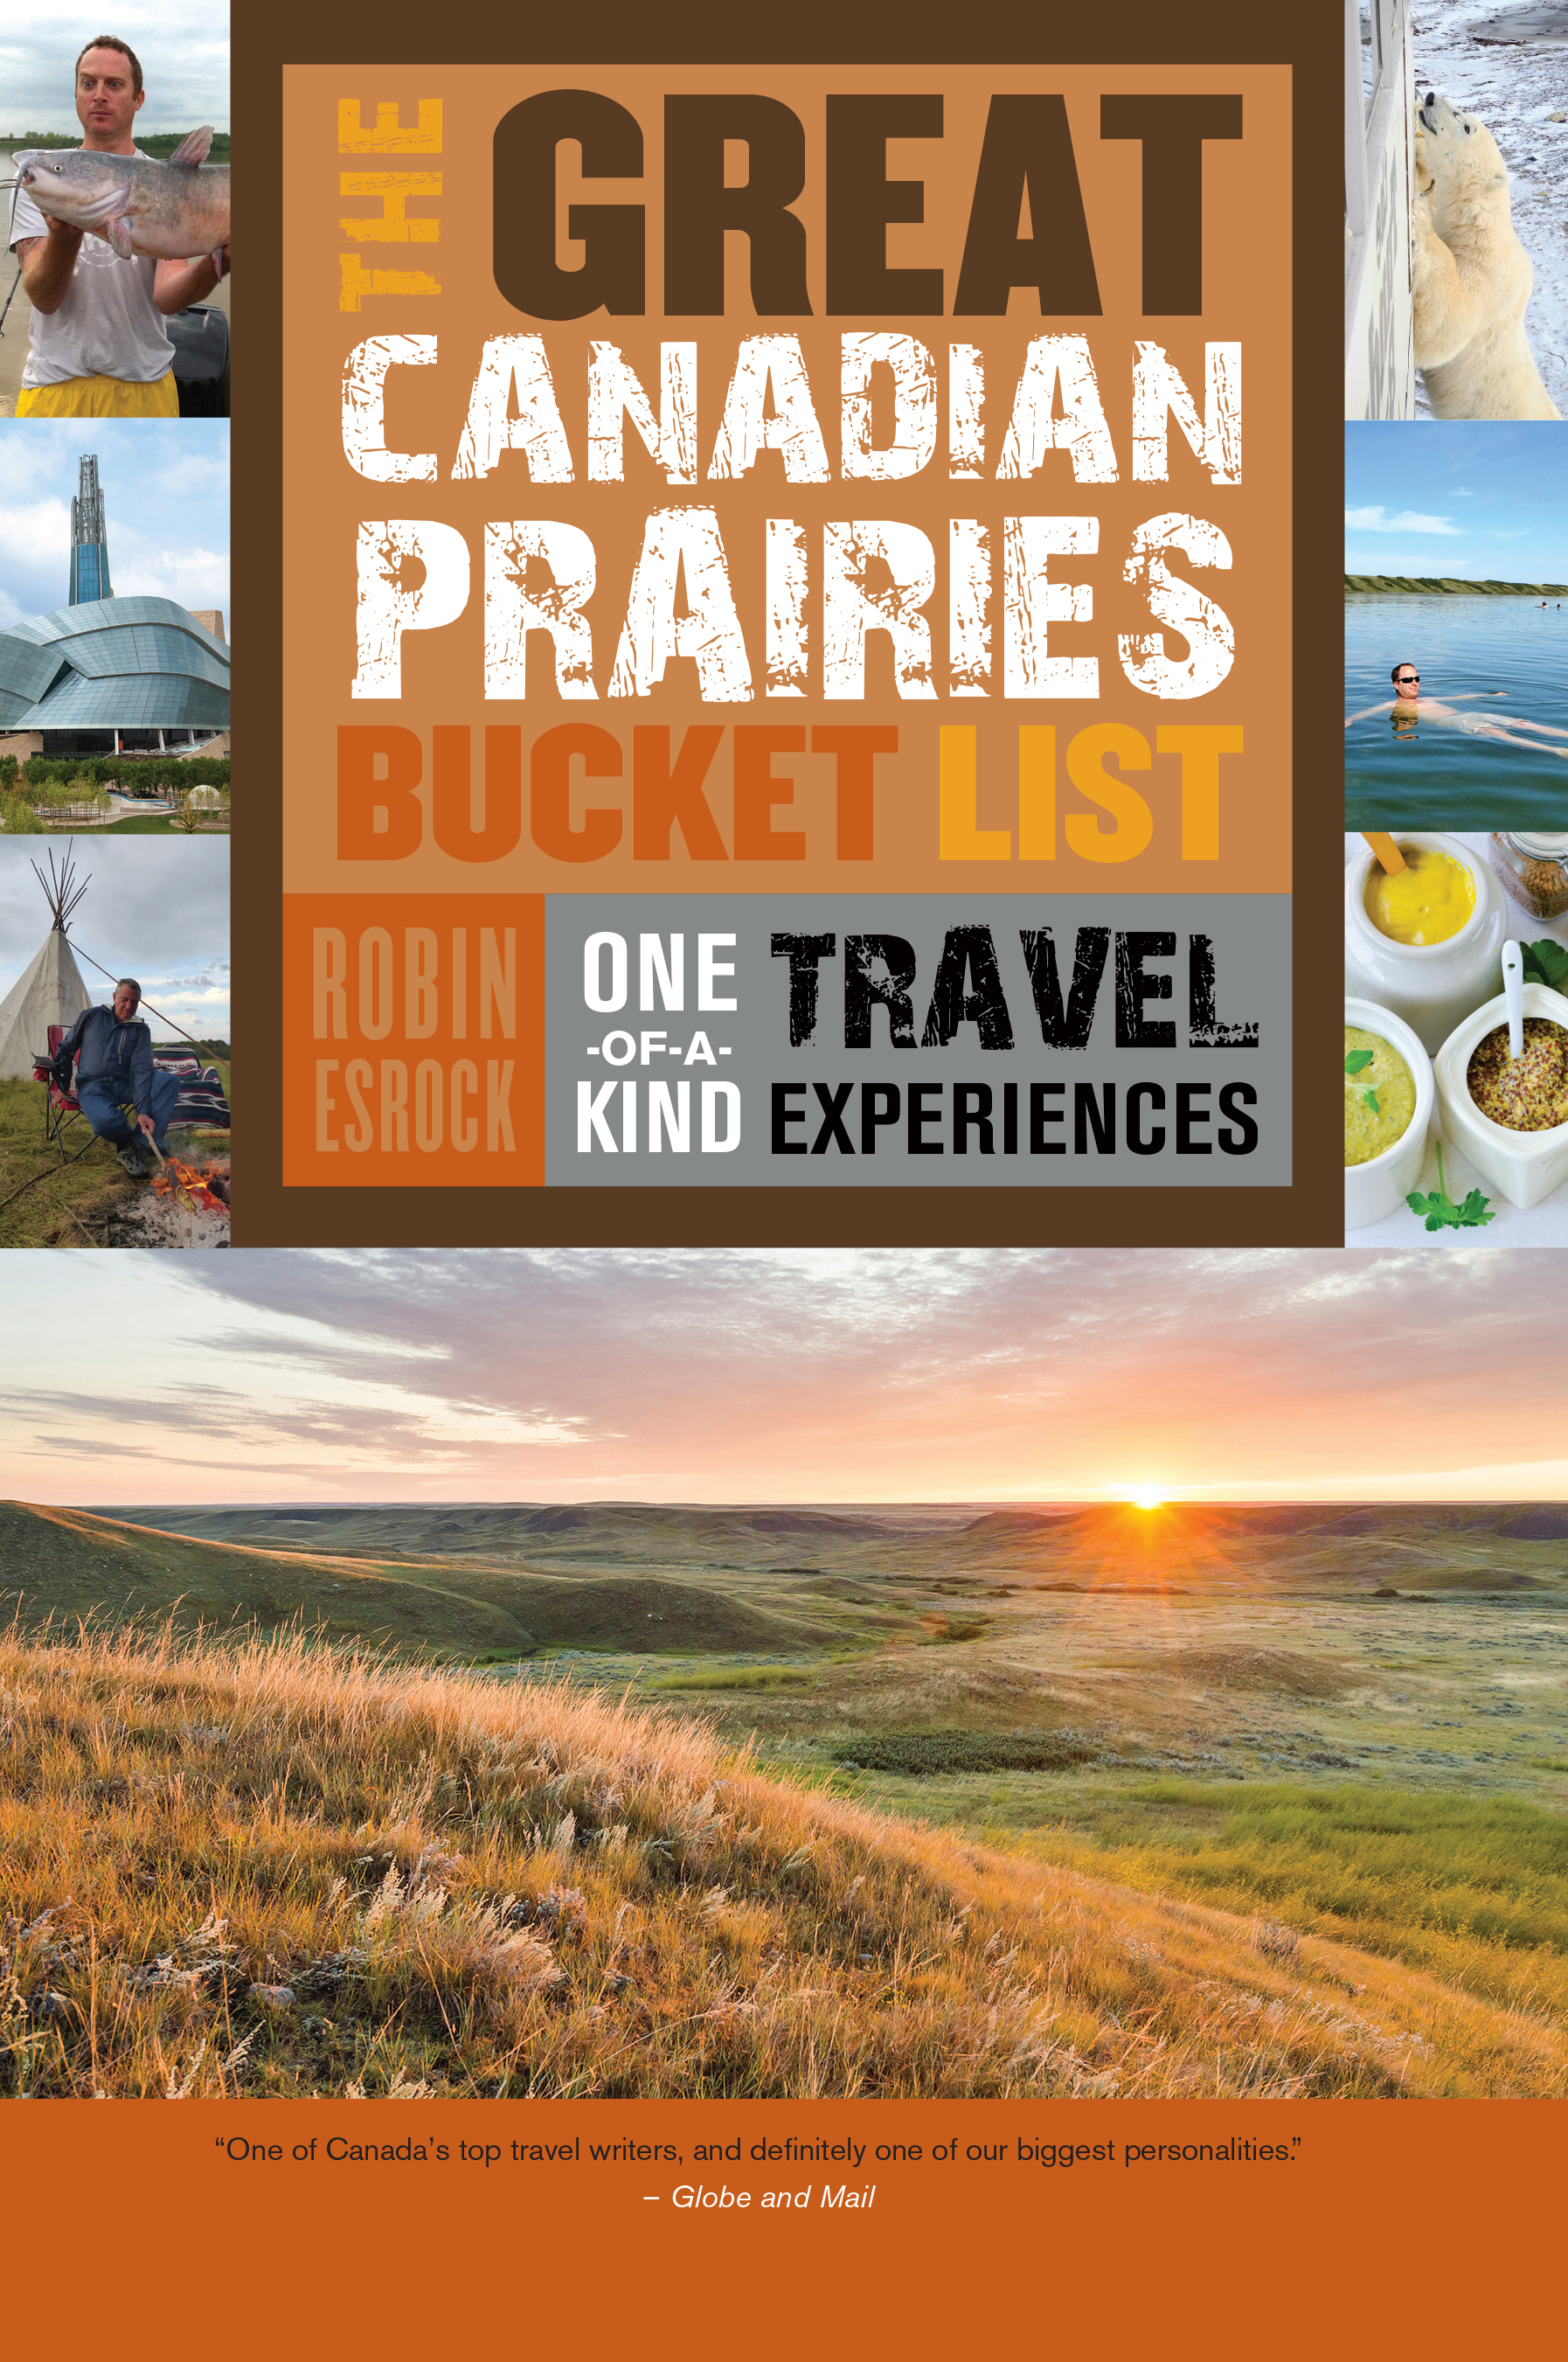 The Great Canadian Prairies Bucket List : One-of-a-Kind Travel Experiences | Dictionary & Encyclopedia